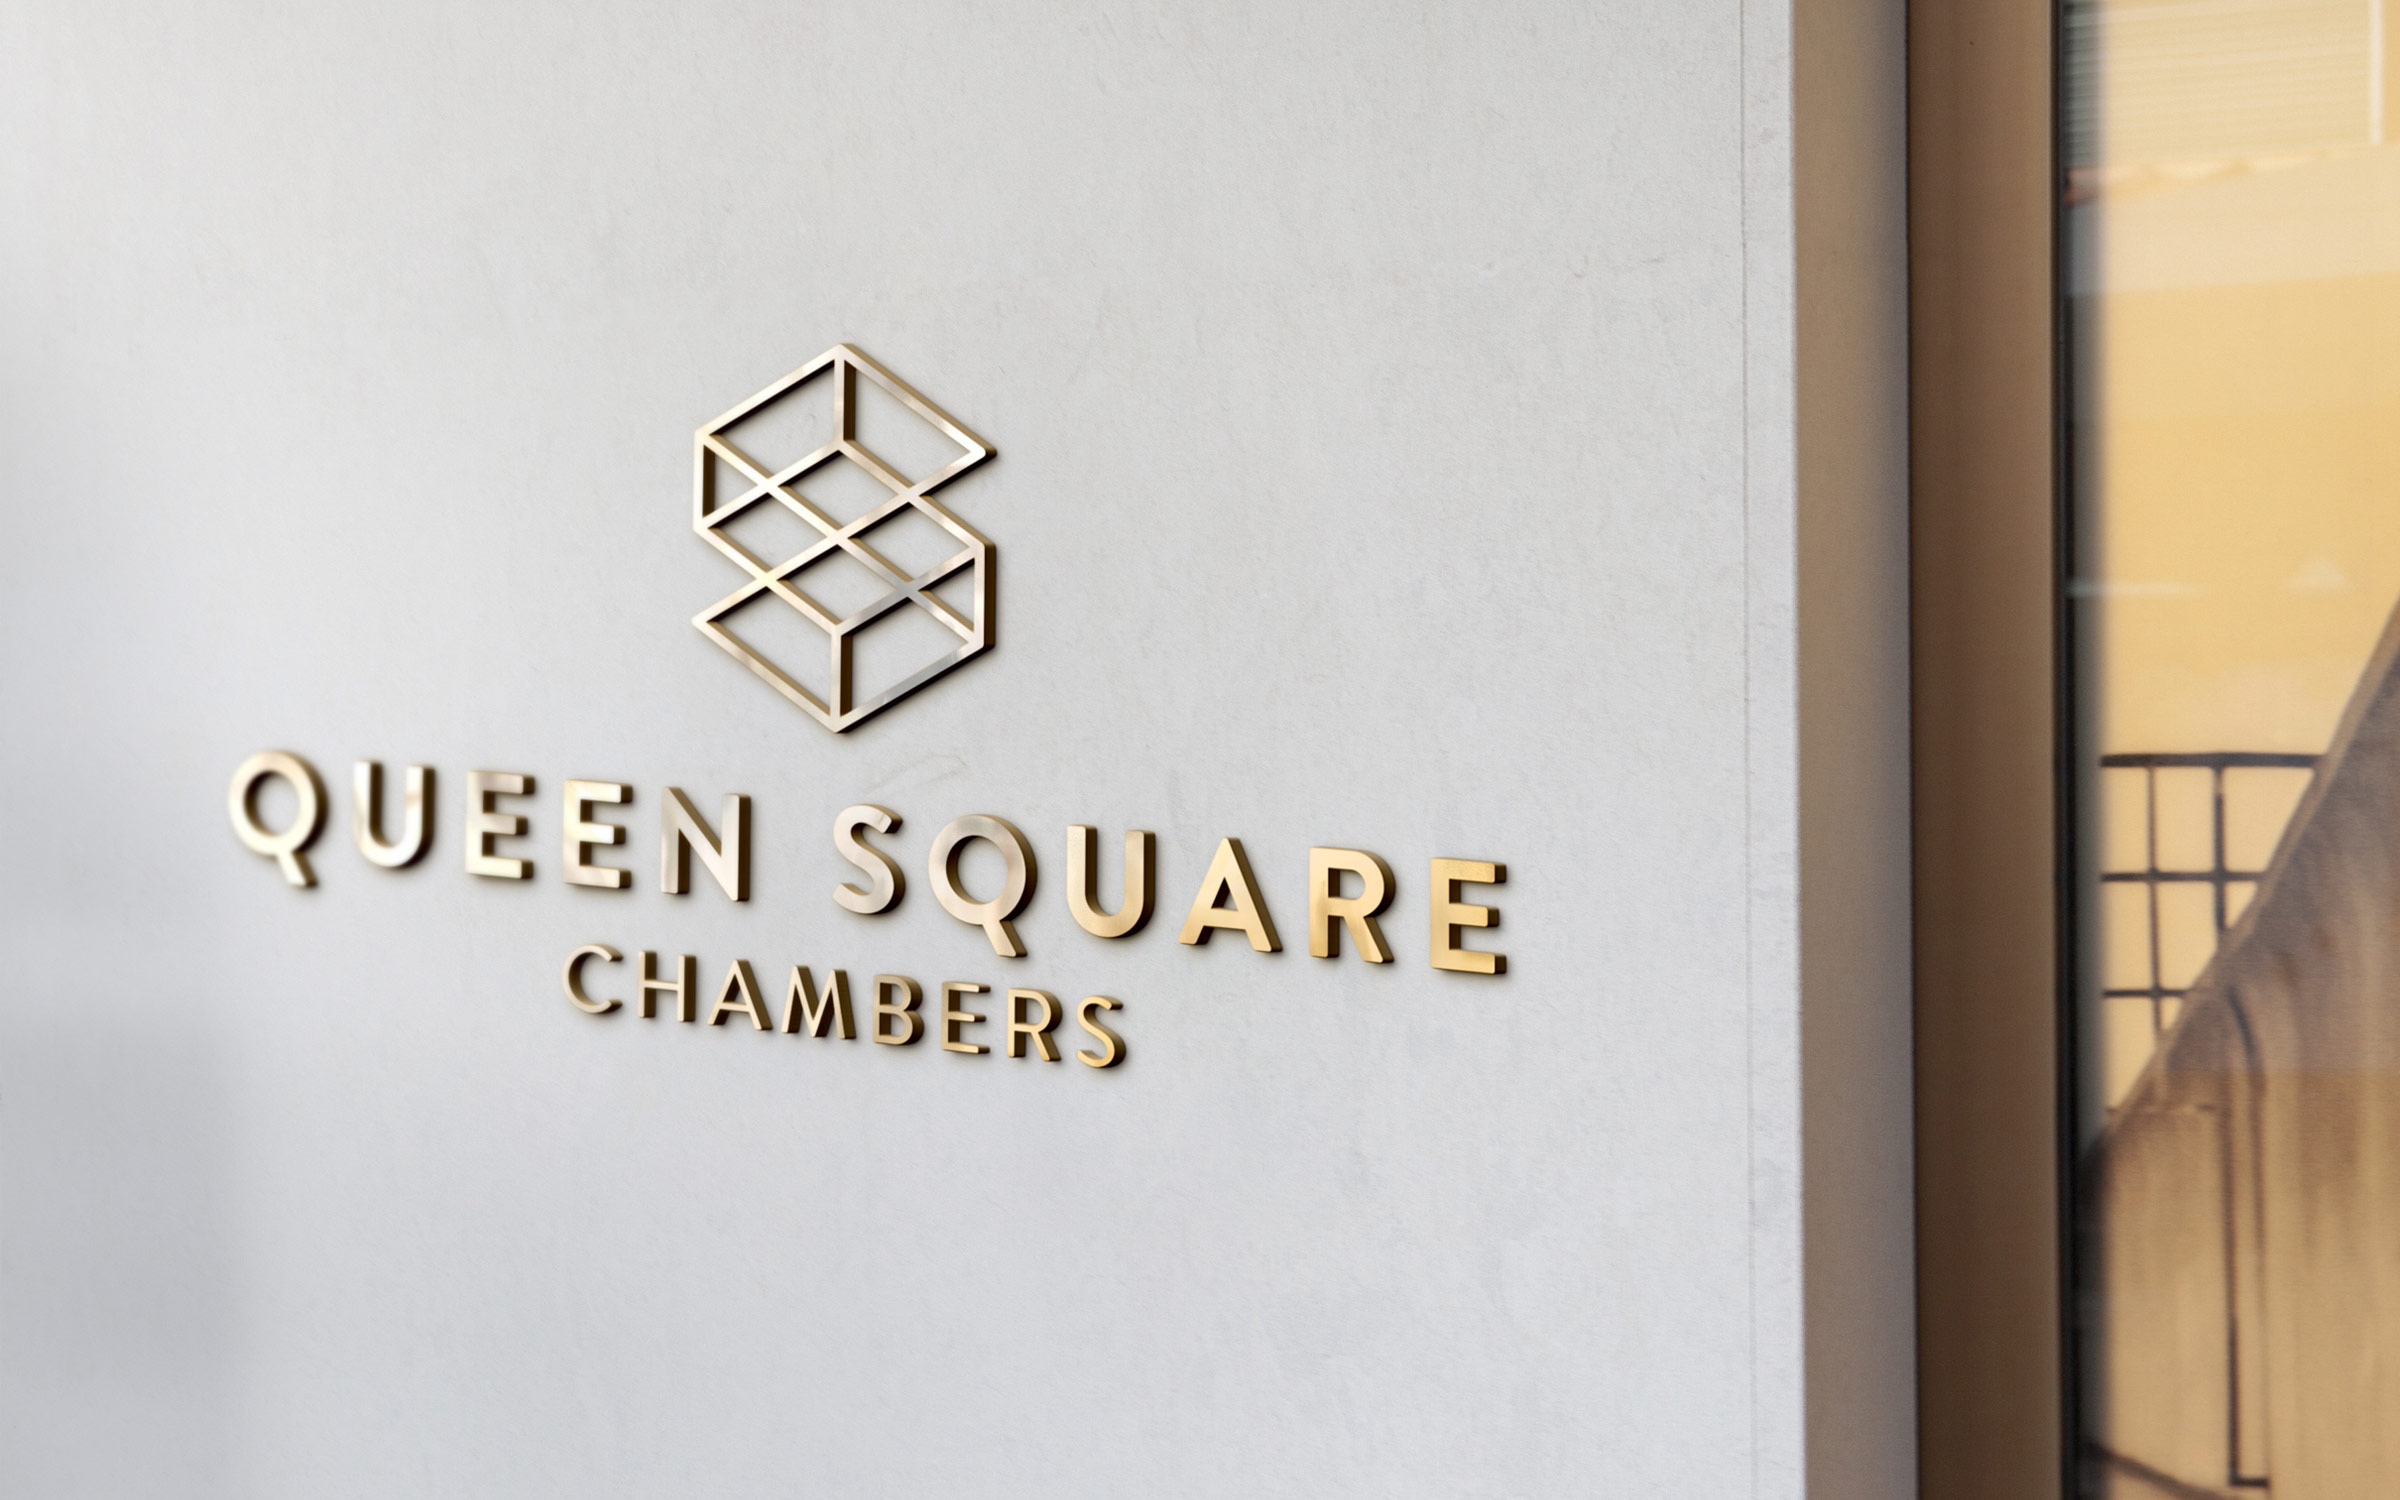 Signage for Queen Square Chambers